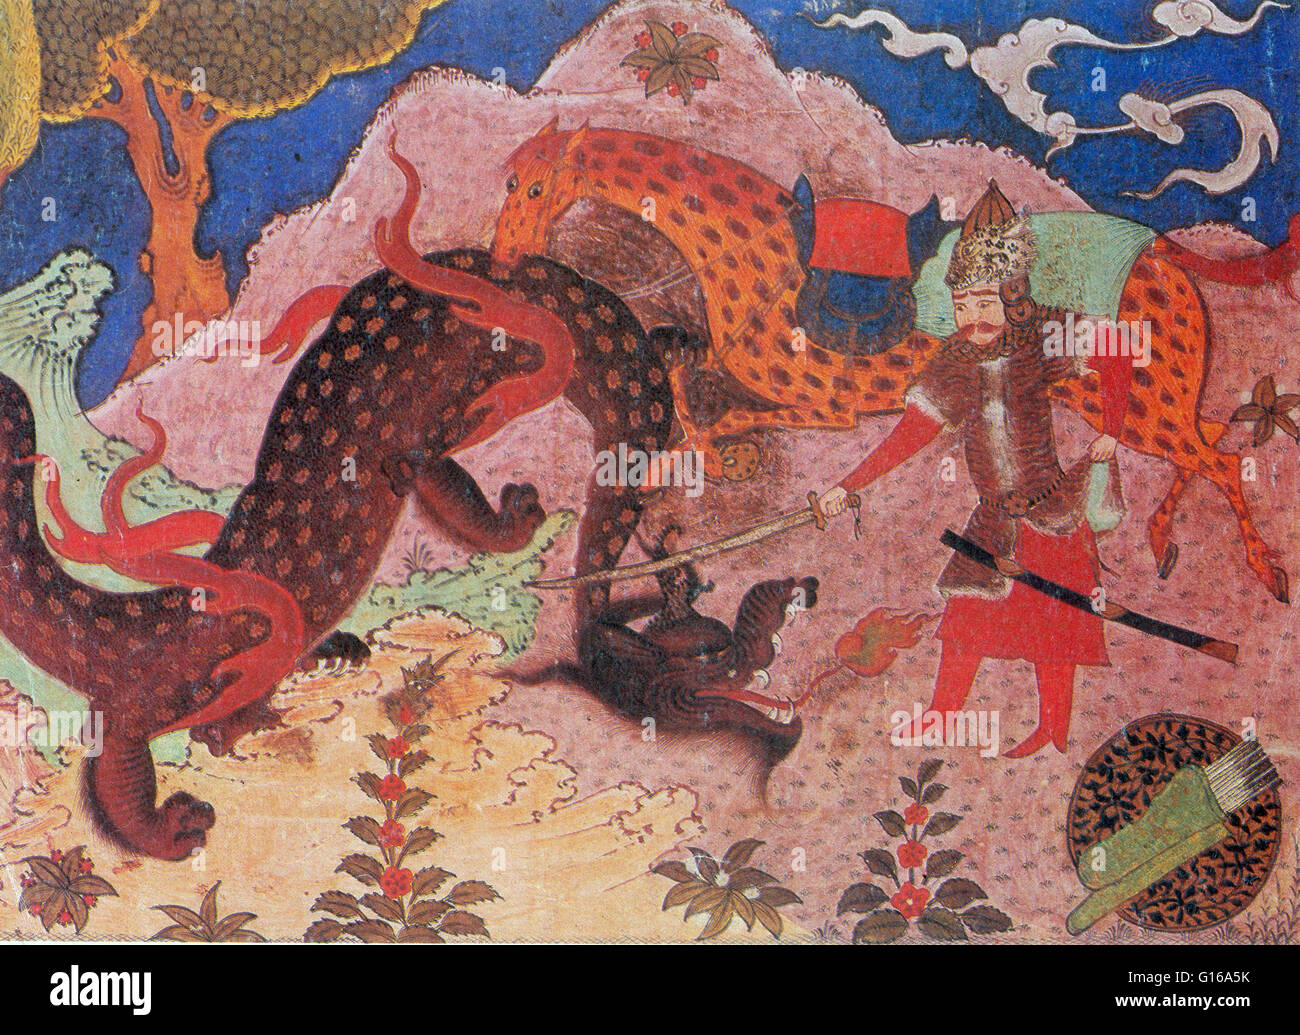 Rostam is the epic hero of the story, Rostam and Sohrab, part of the Persian epic of Shahnama in Persian mythology. - Stock Image